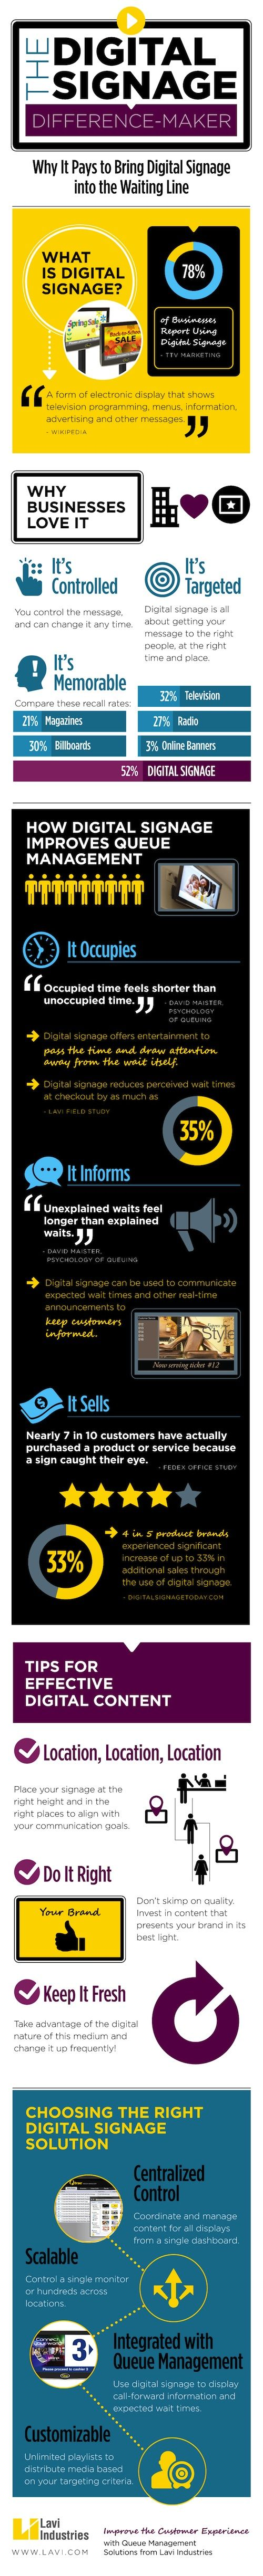 This infographic illustrates how digital signage works, why businesses are taking advantage of its benefits and how it improves queue management.